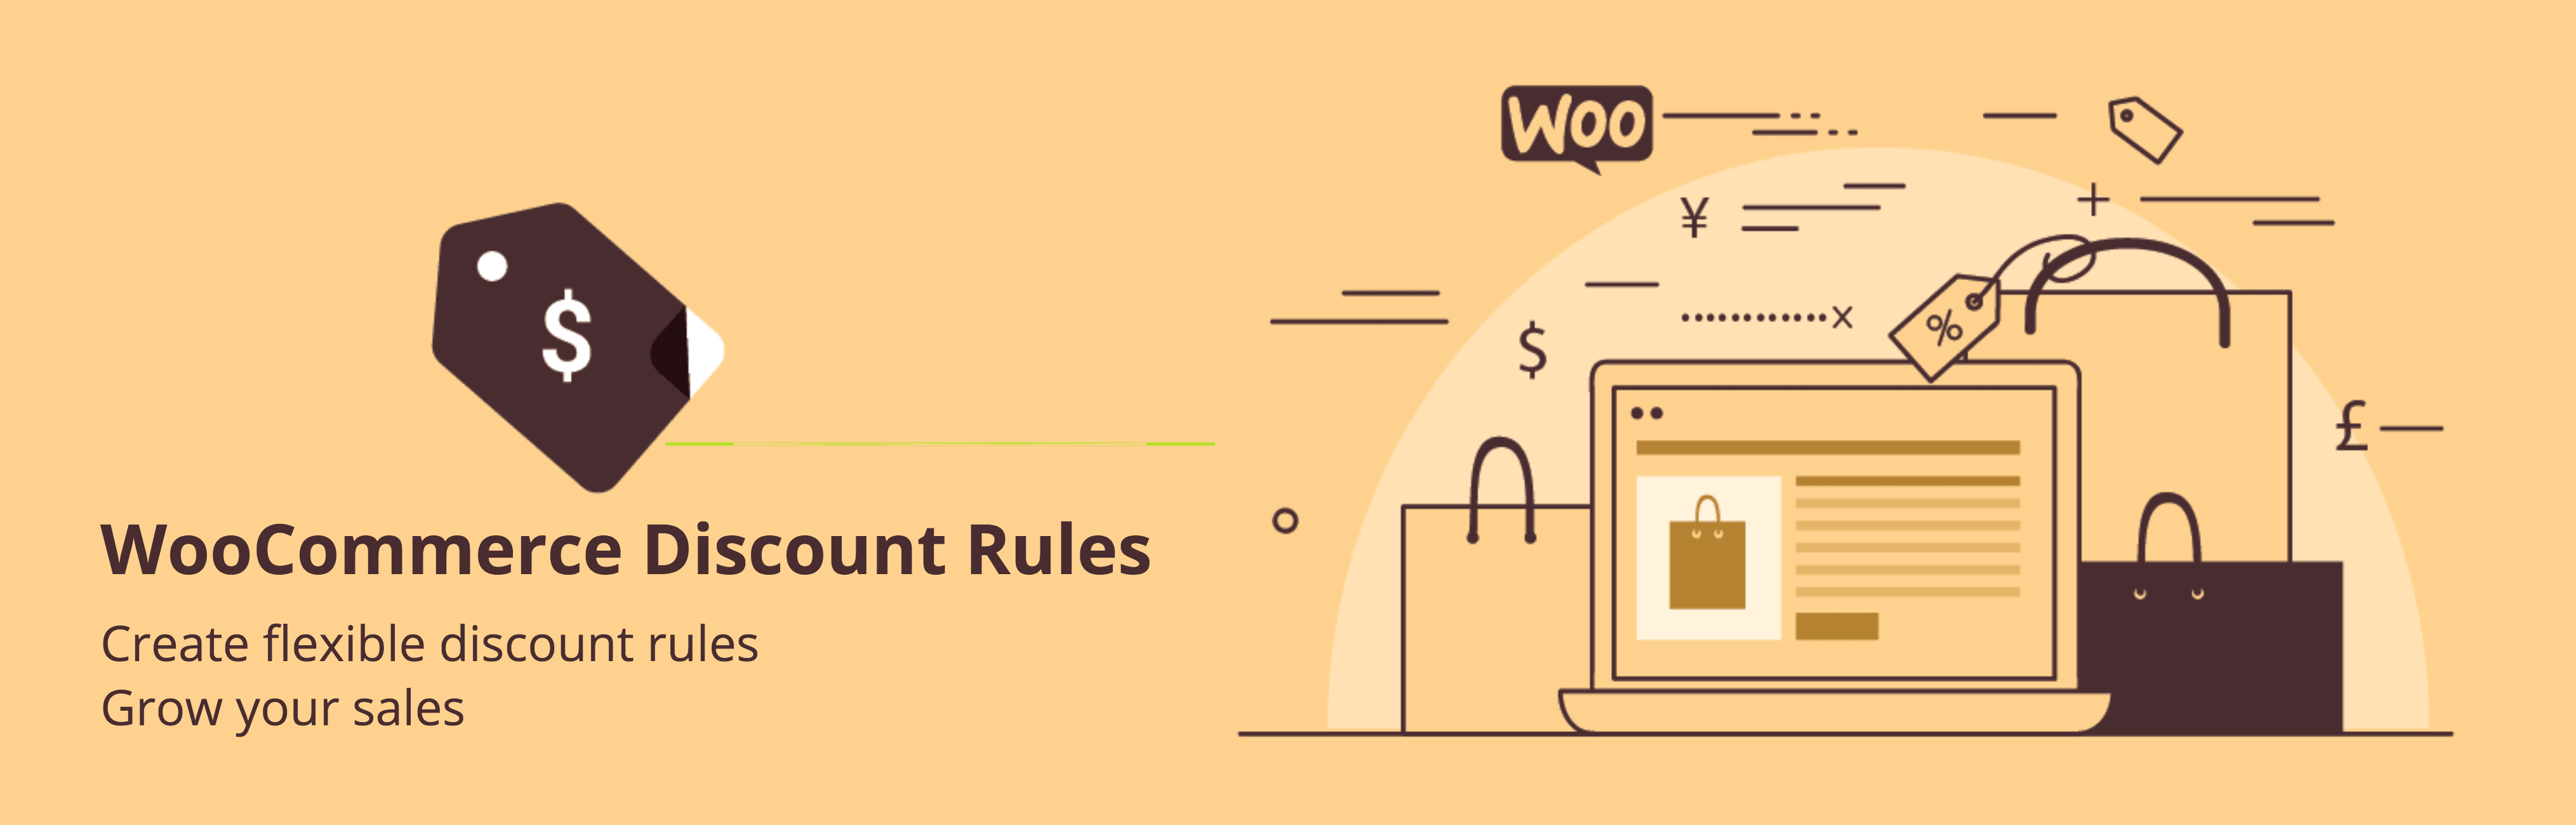 How to Check Abandoned Carts in WooCommerce 1